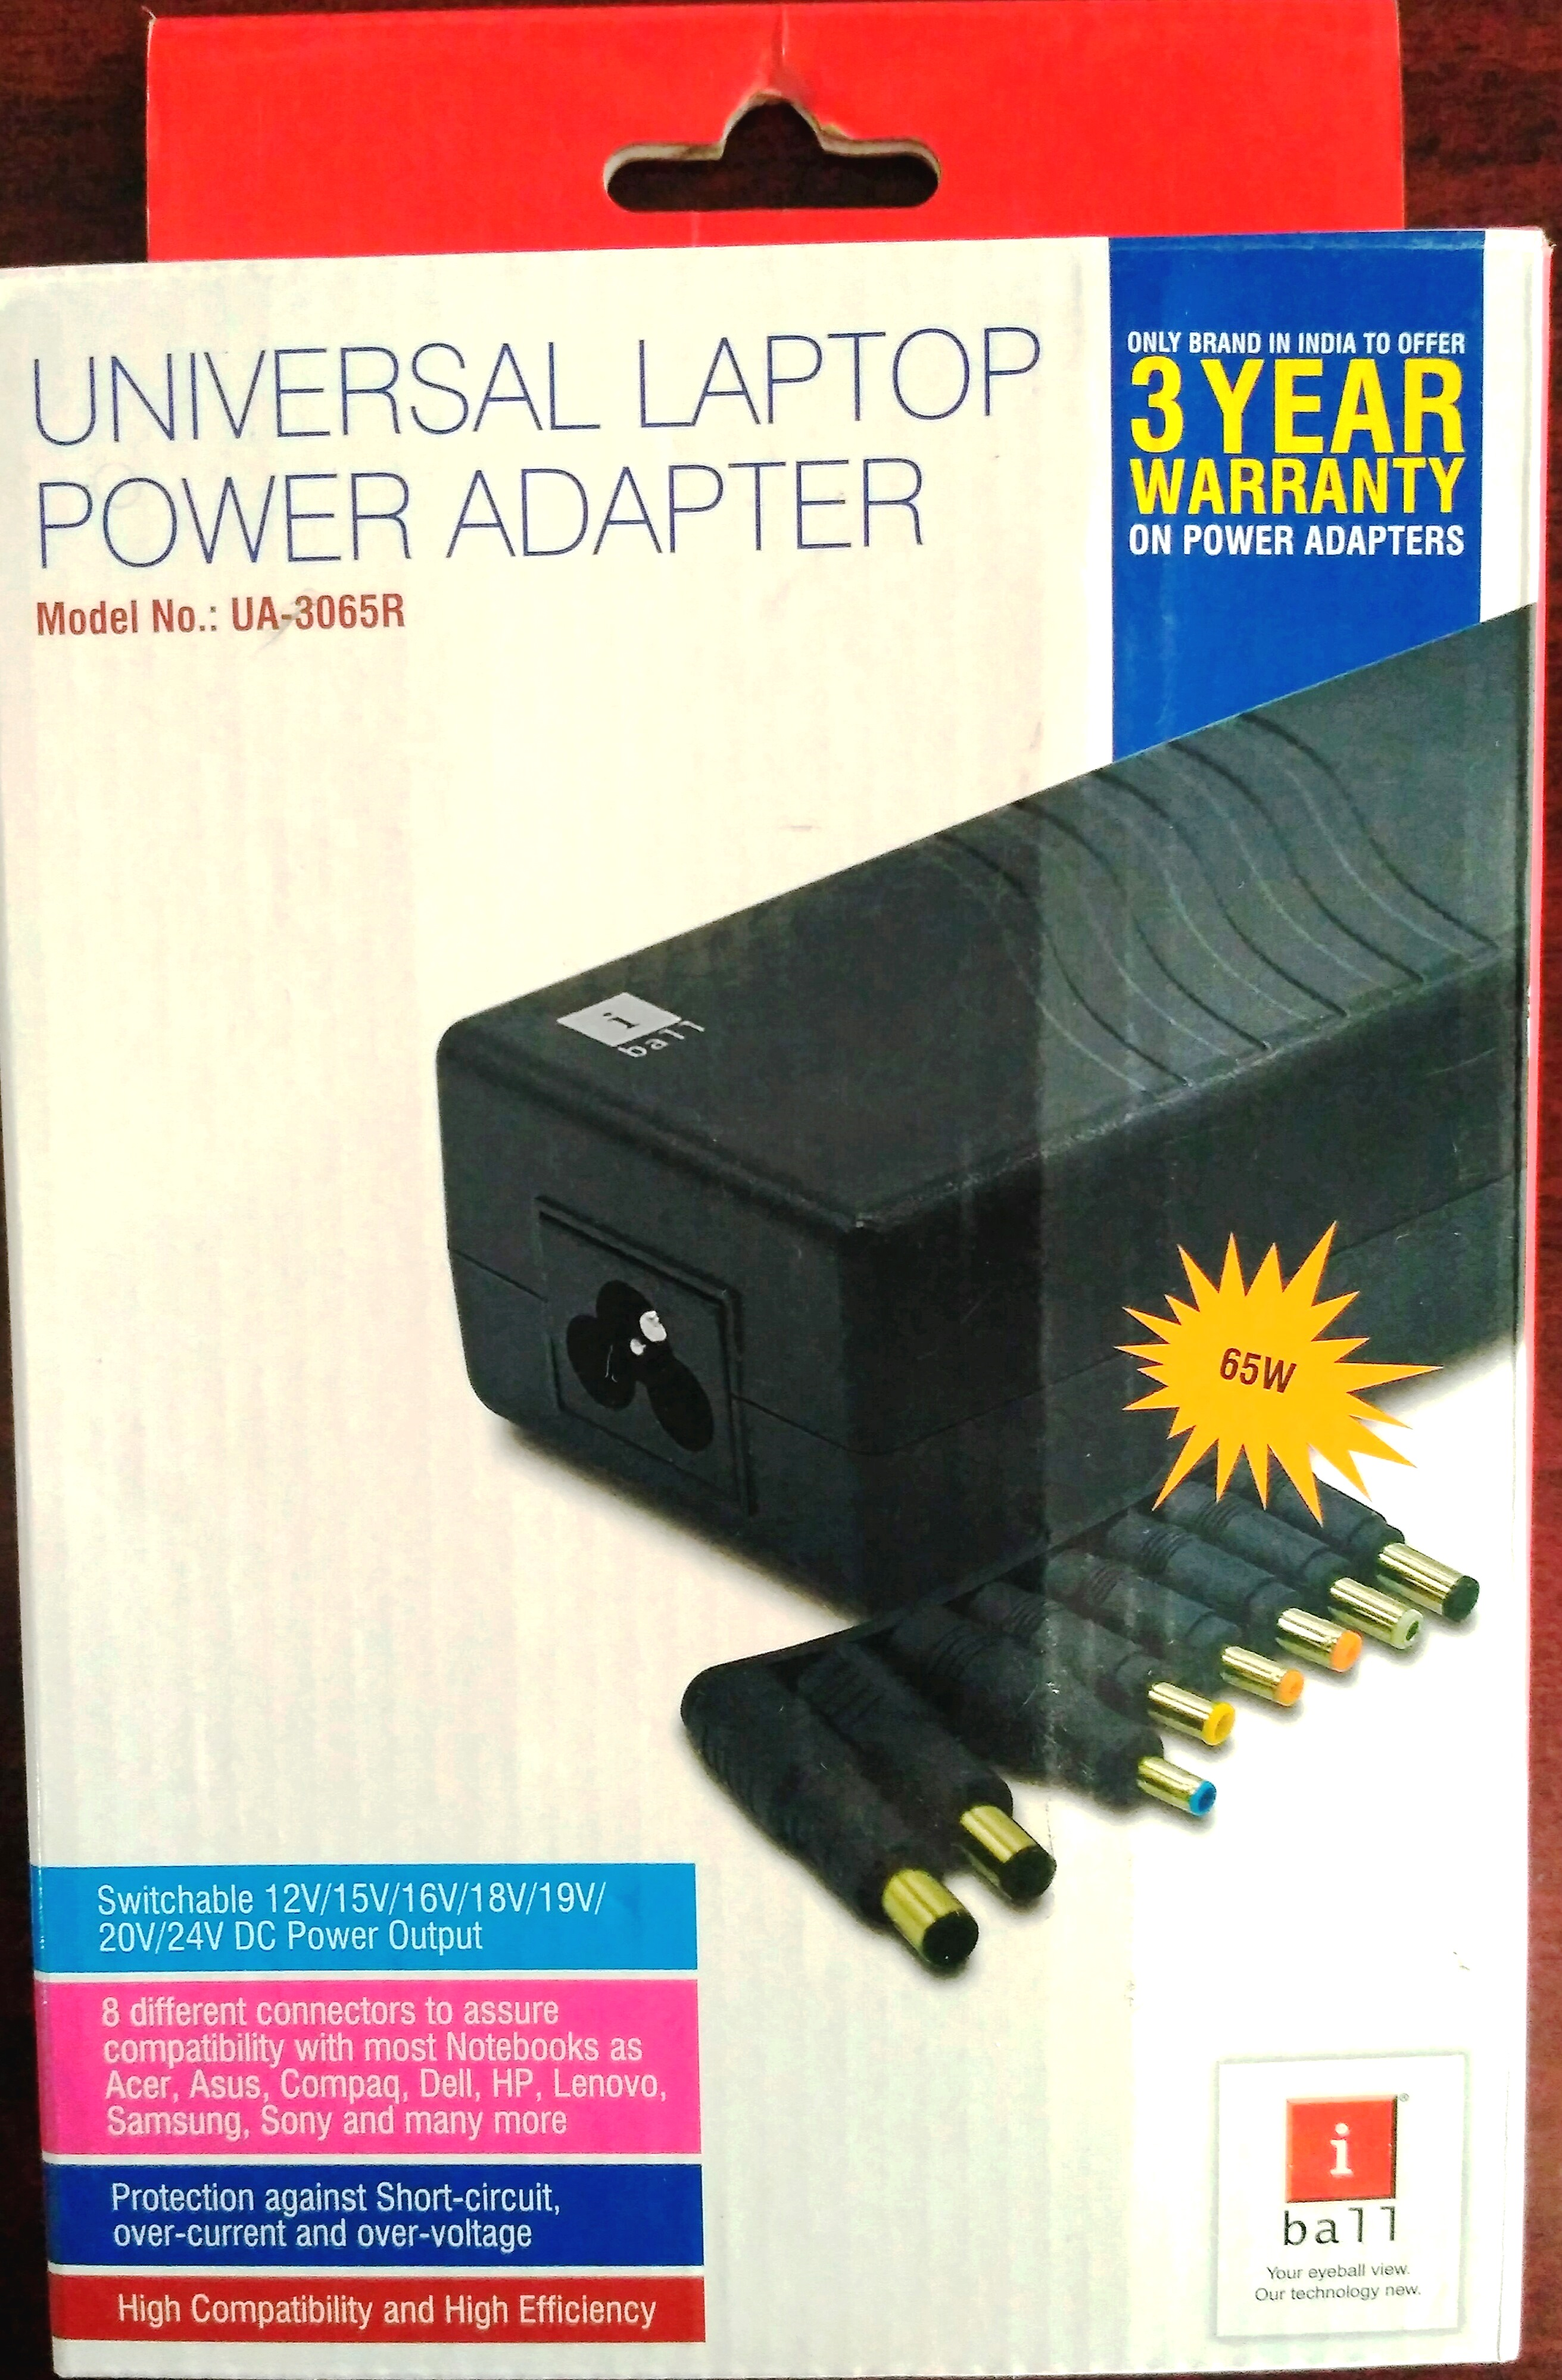 iball universal laptop power adapter ua3065r- 8 extra pins